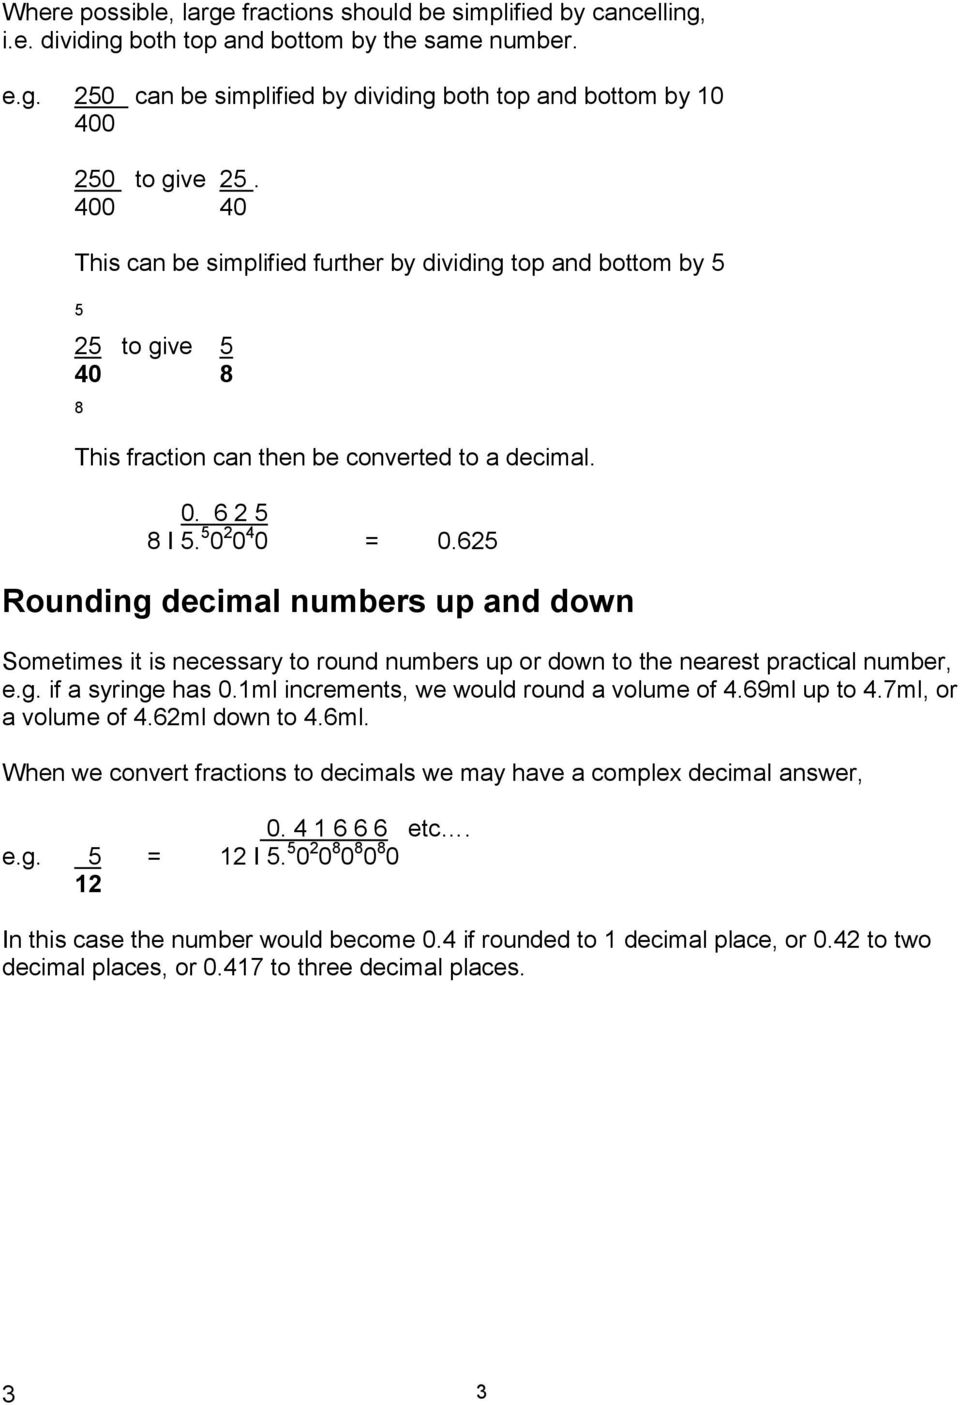 625 Rounding decimal numbers up and down Sometimes it is necessary to round numbers up or down to the nearest practical number, e.g. if a syringe has 0.1ml increments, we would round a volume of 4.